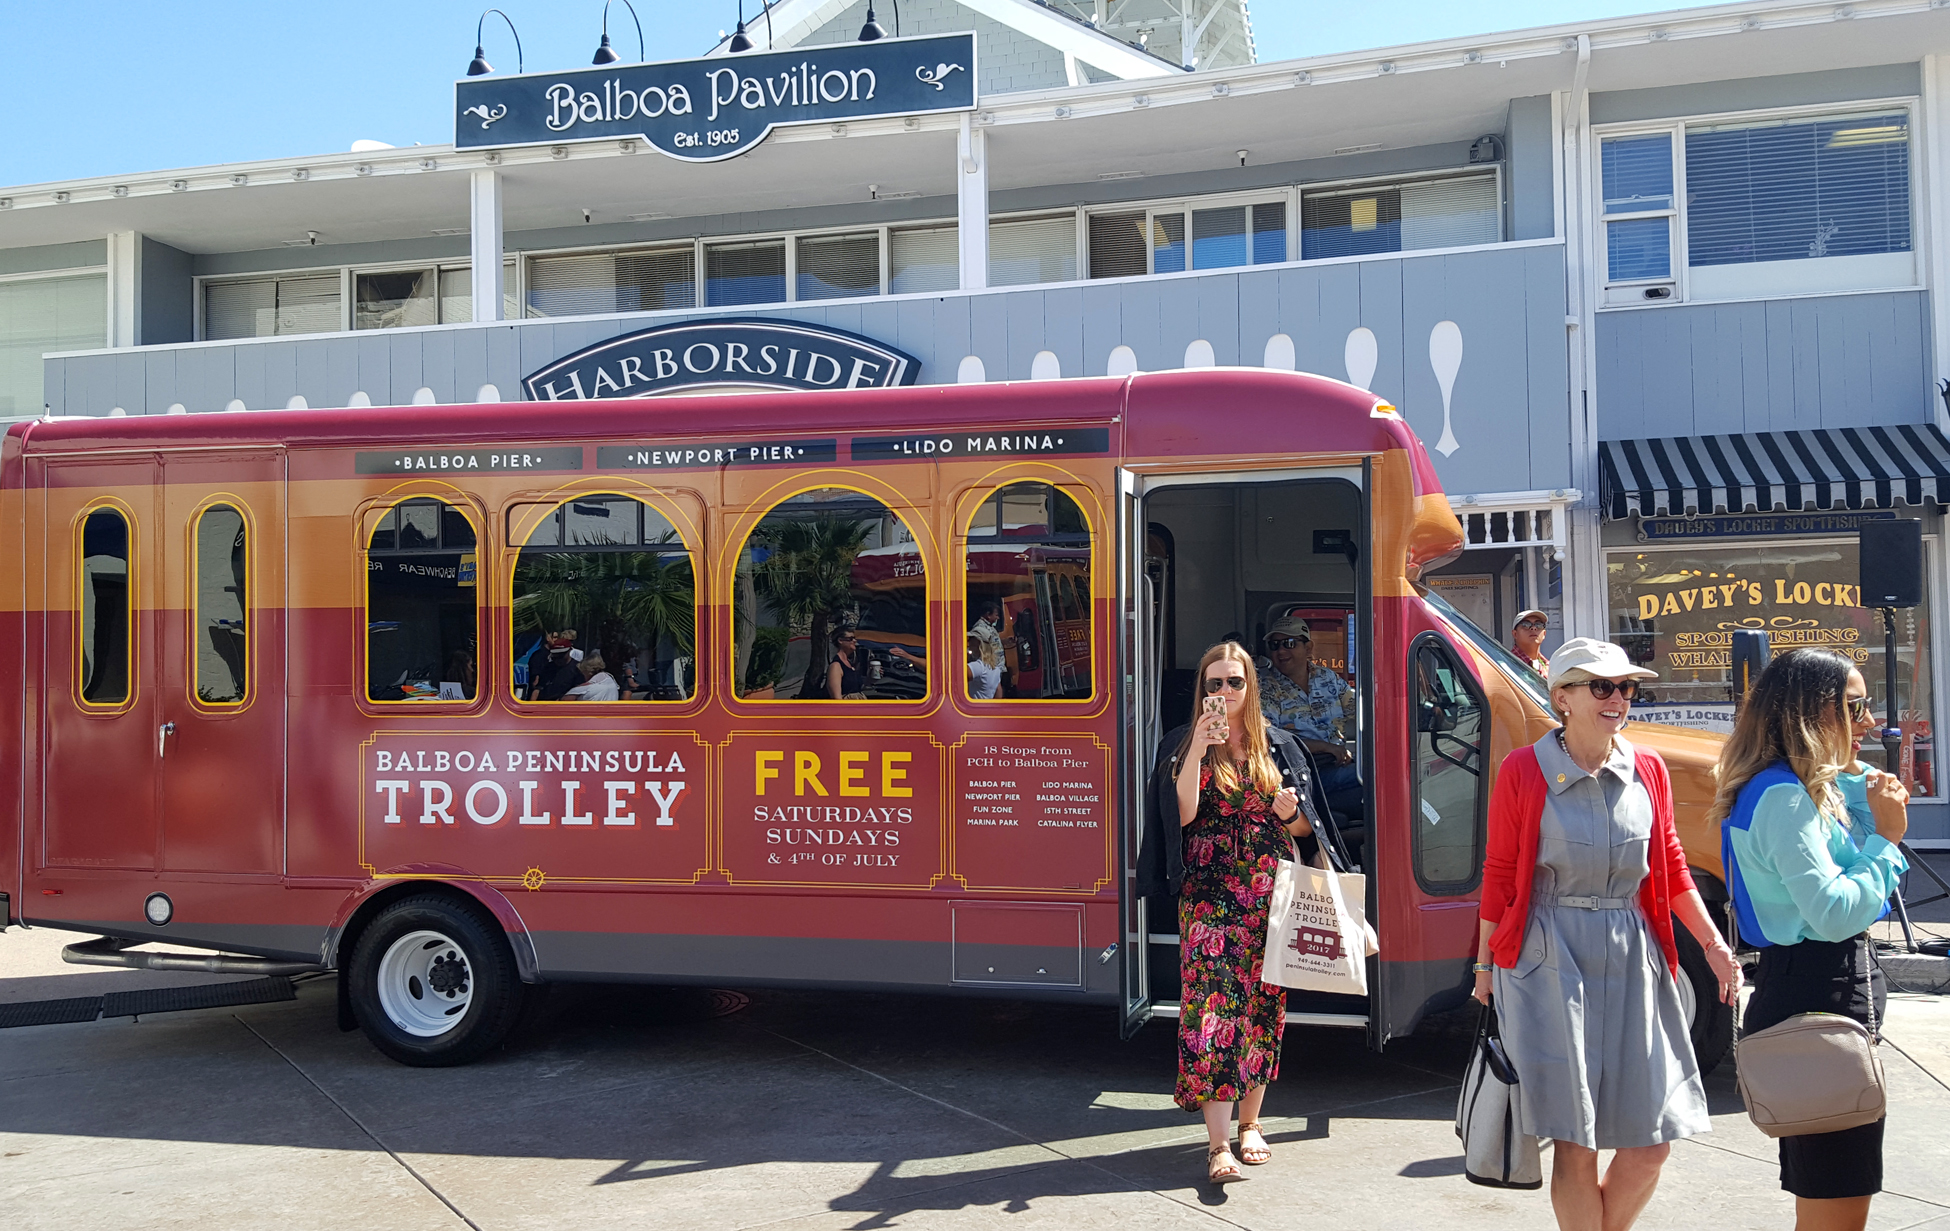 The newport beach directory newport beach indy directory the balboa peninsula trolley returns tomorrow city of newport beach city hall councilwoman diane brooks dixon whose district covers the peninsula solutioingenieria Gallery